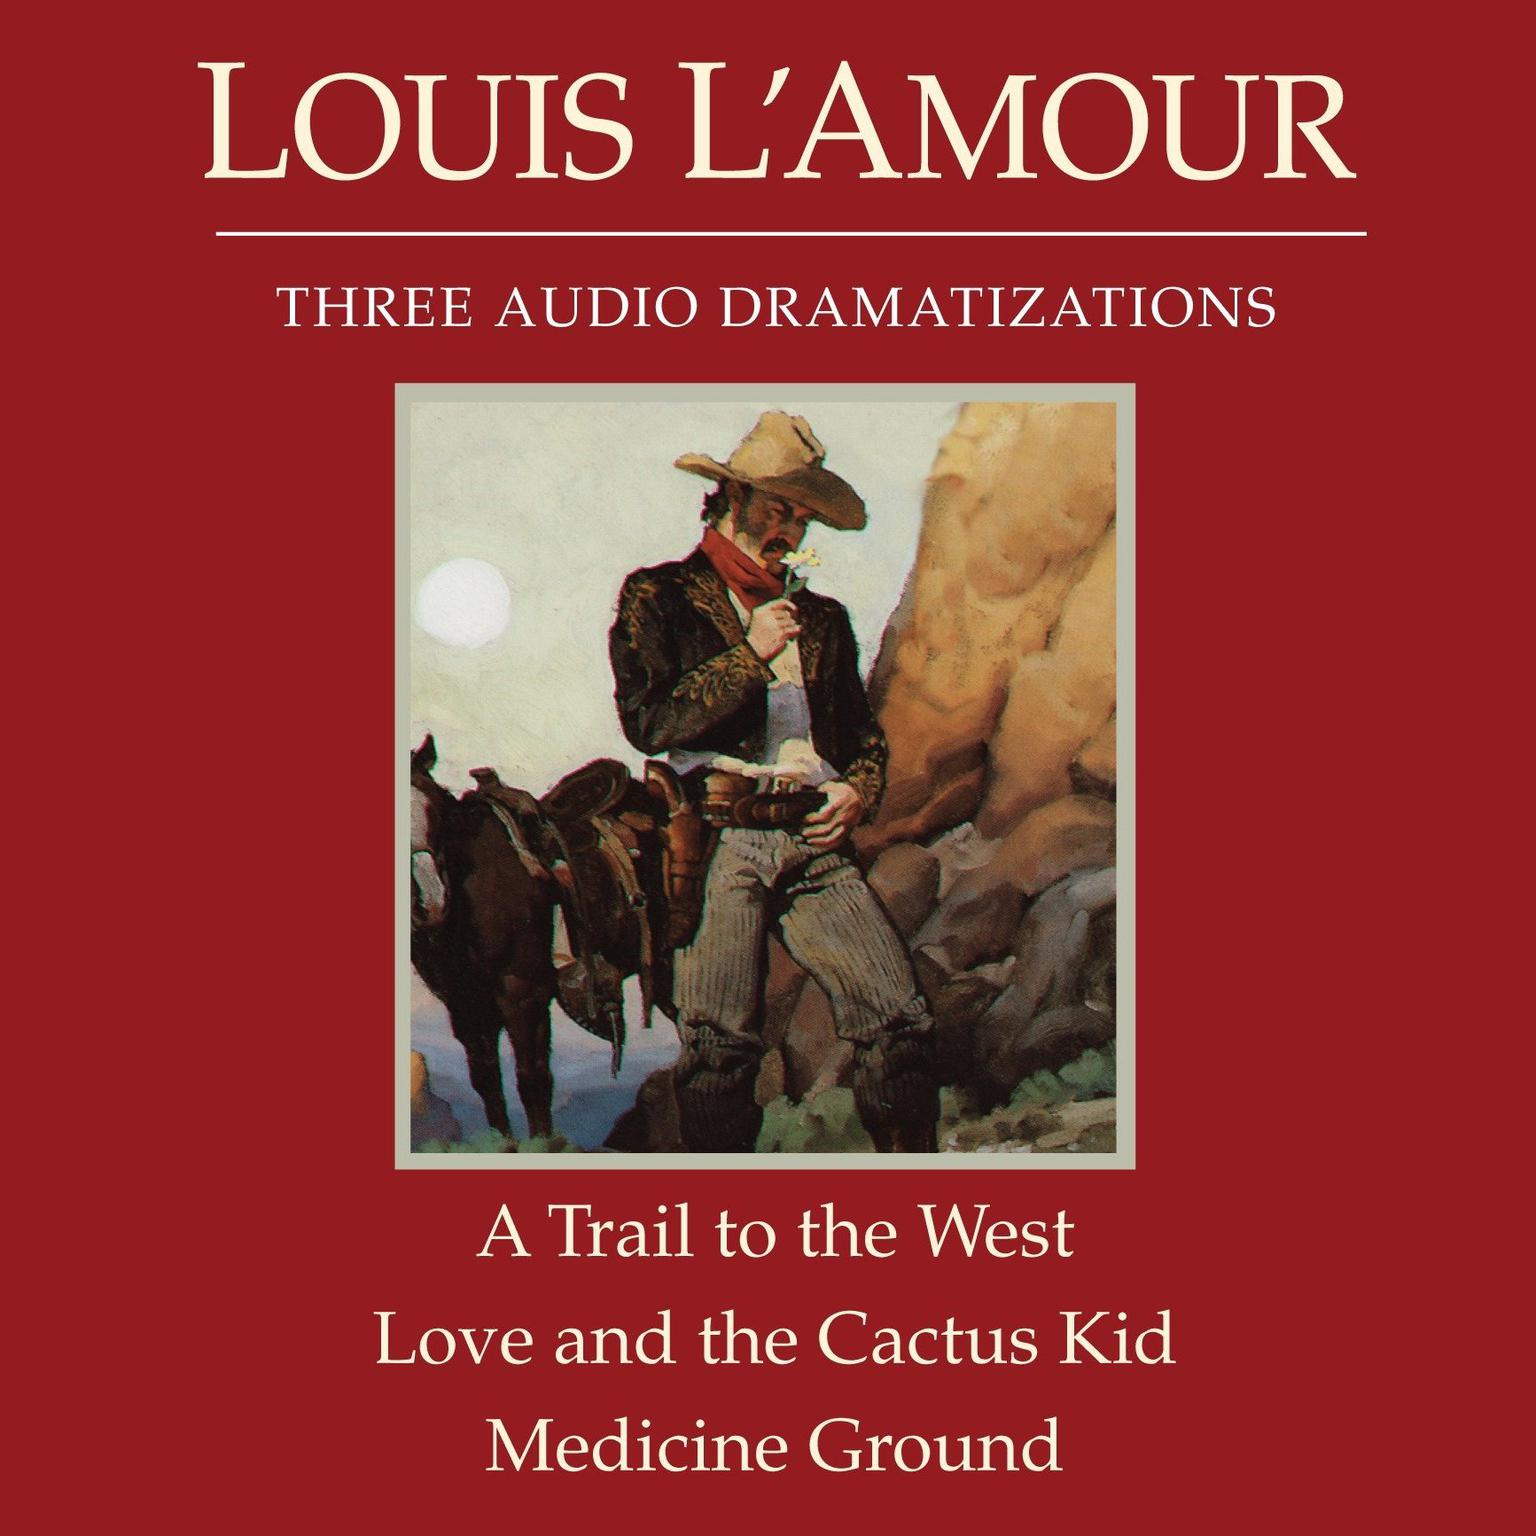 Printable A Trail to the West /Love and the Cactus Kid / Medicine Ground Audiobook Cover Art